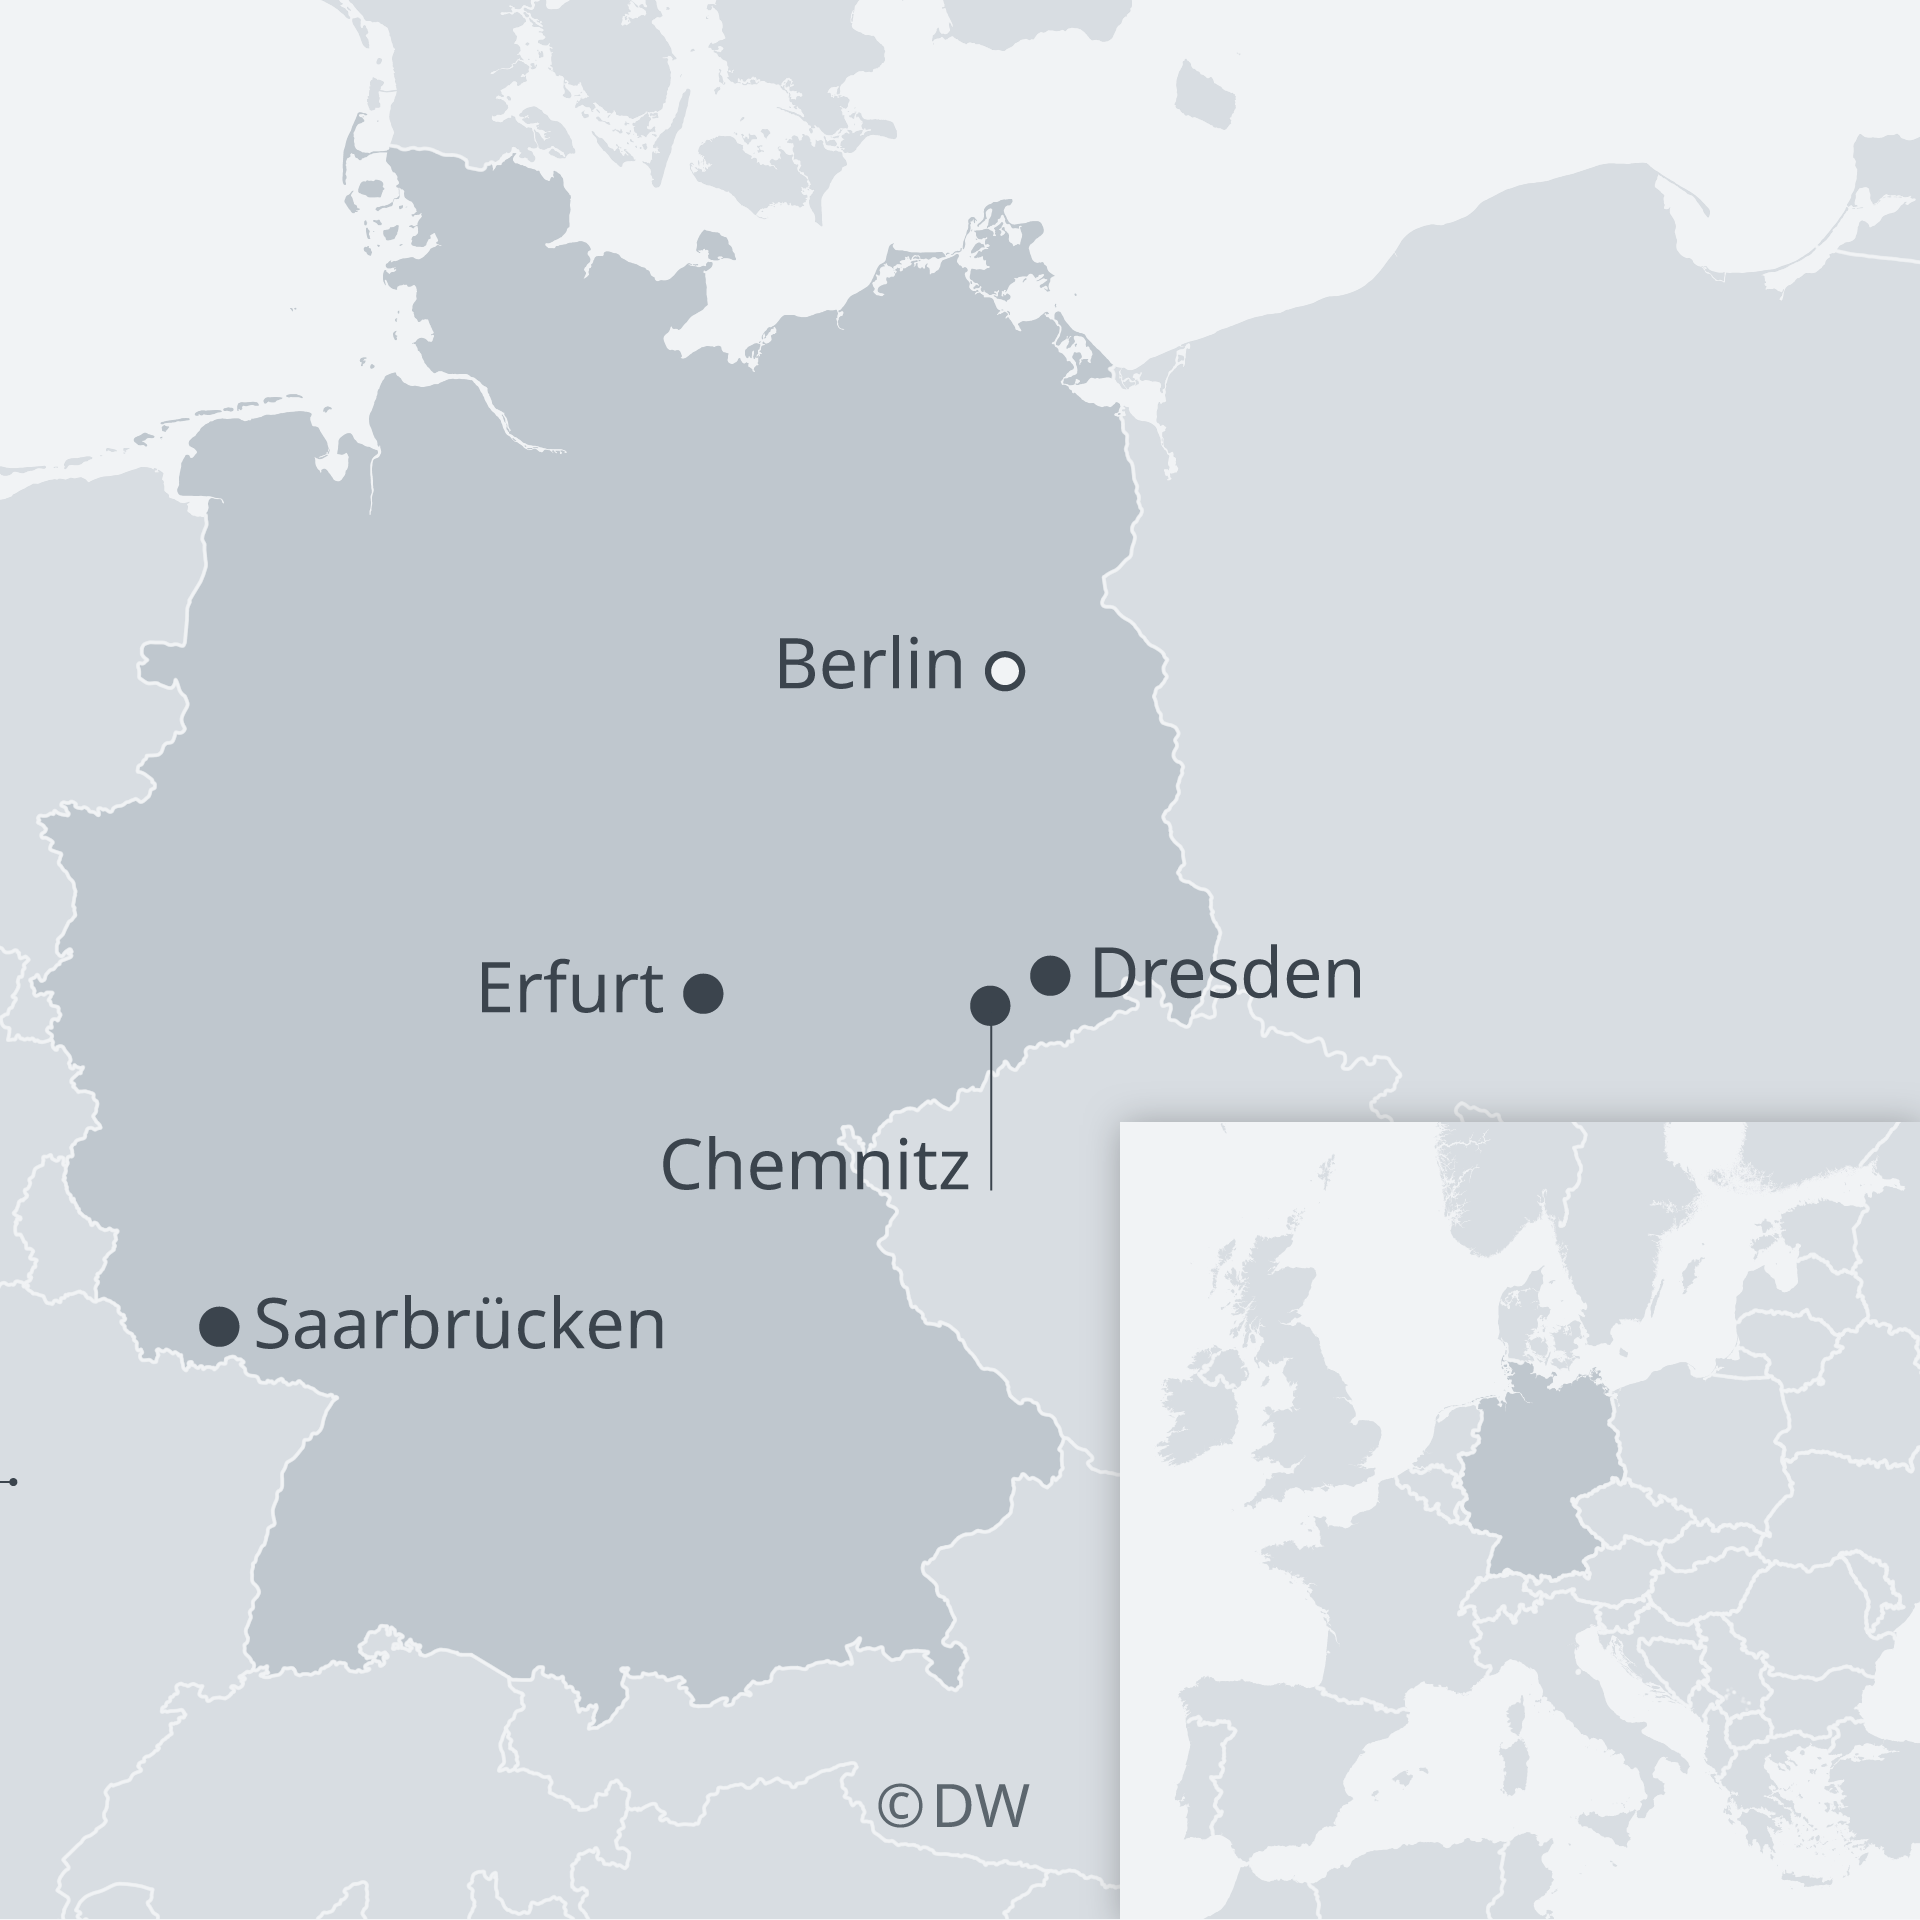 Capital Of Germany Map.Germany Named Drug Use Capital Following Europe Wide Sewage Study